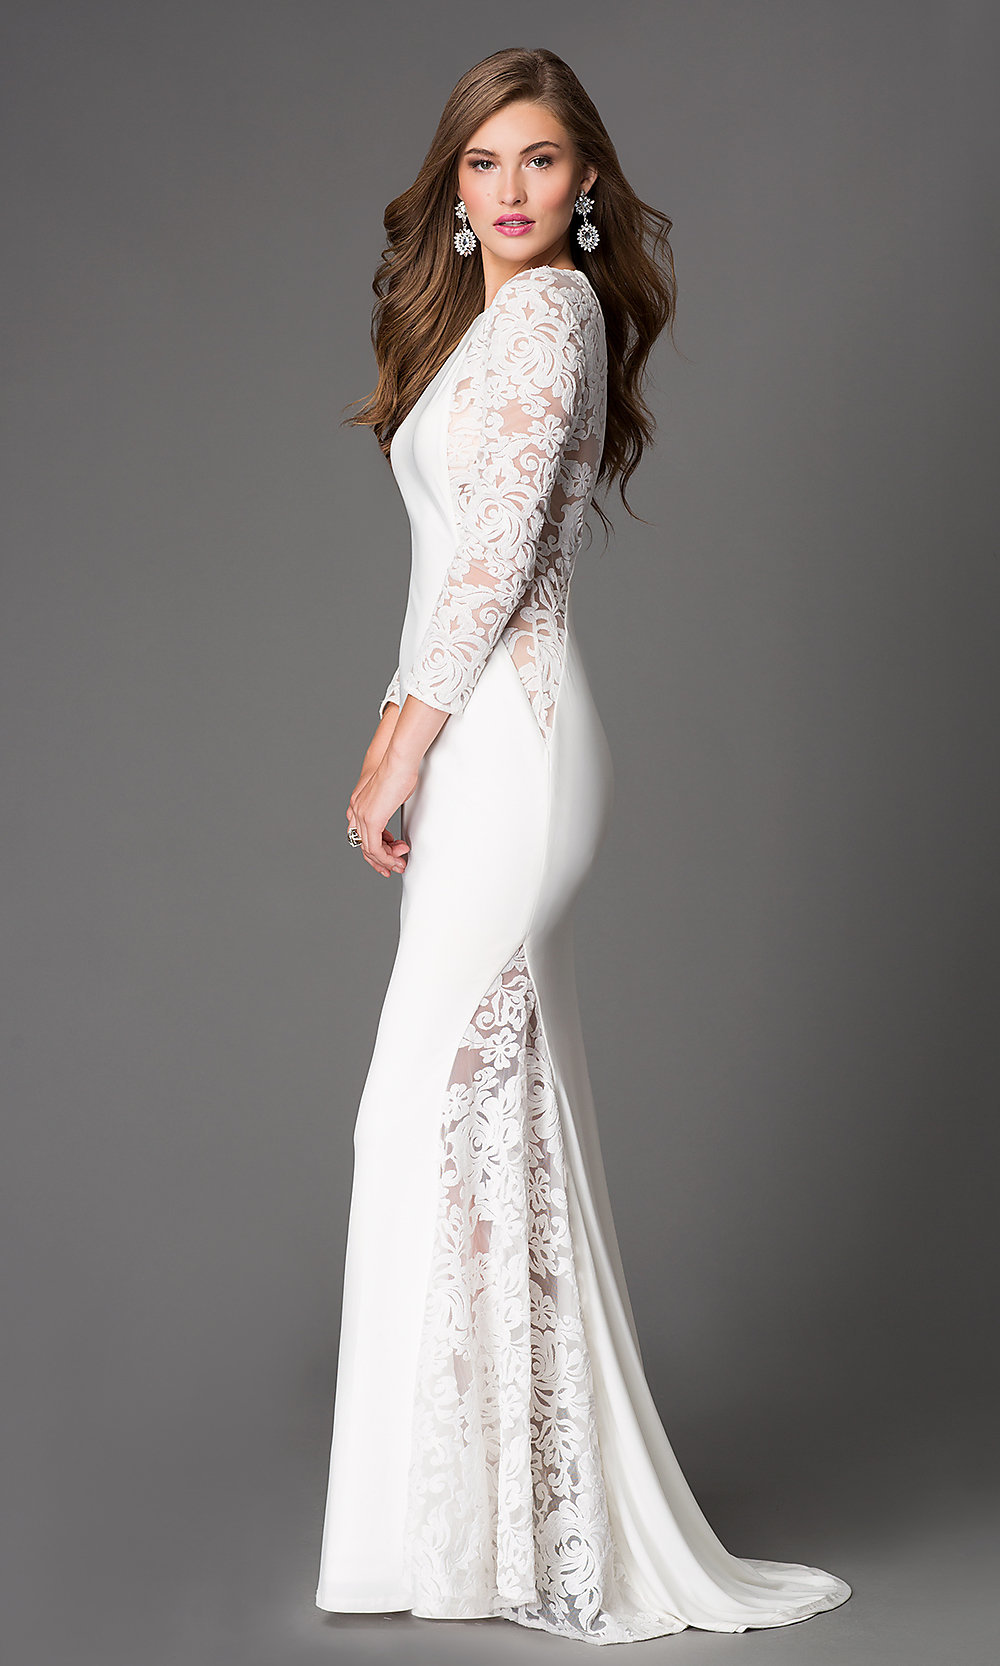 Shop our wide selection of long sleeve formal dresses now at Adrianna Papell. Dresses perfect for any event, from wedding dresses to cocktail dresses & more. Adrianna Papell.